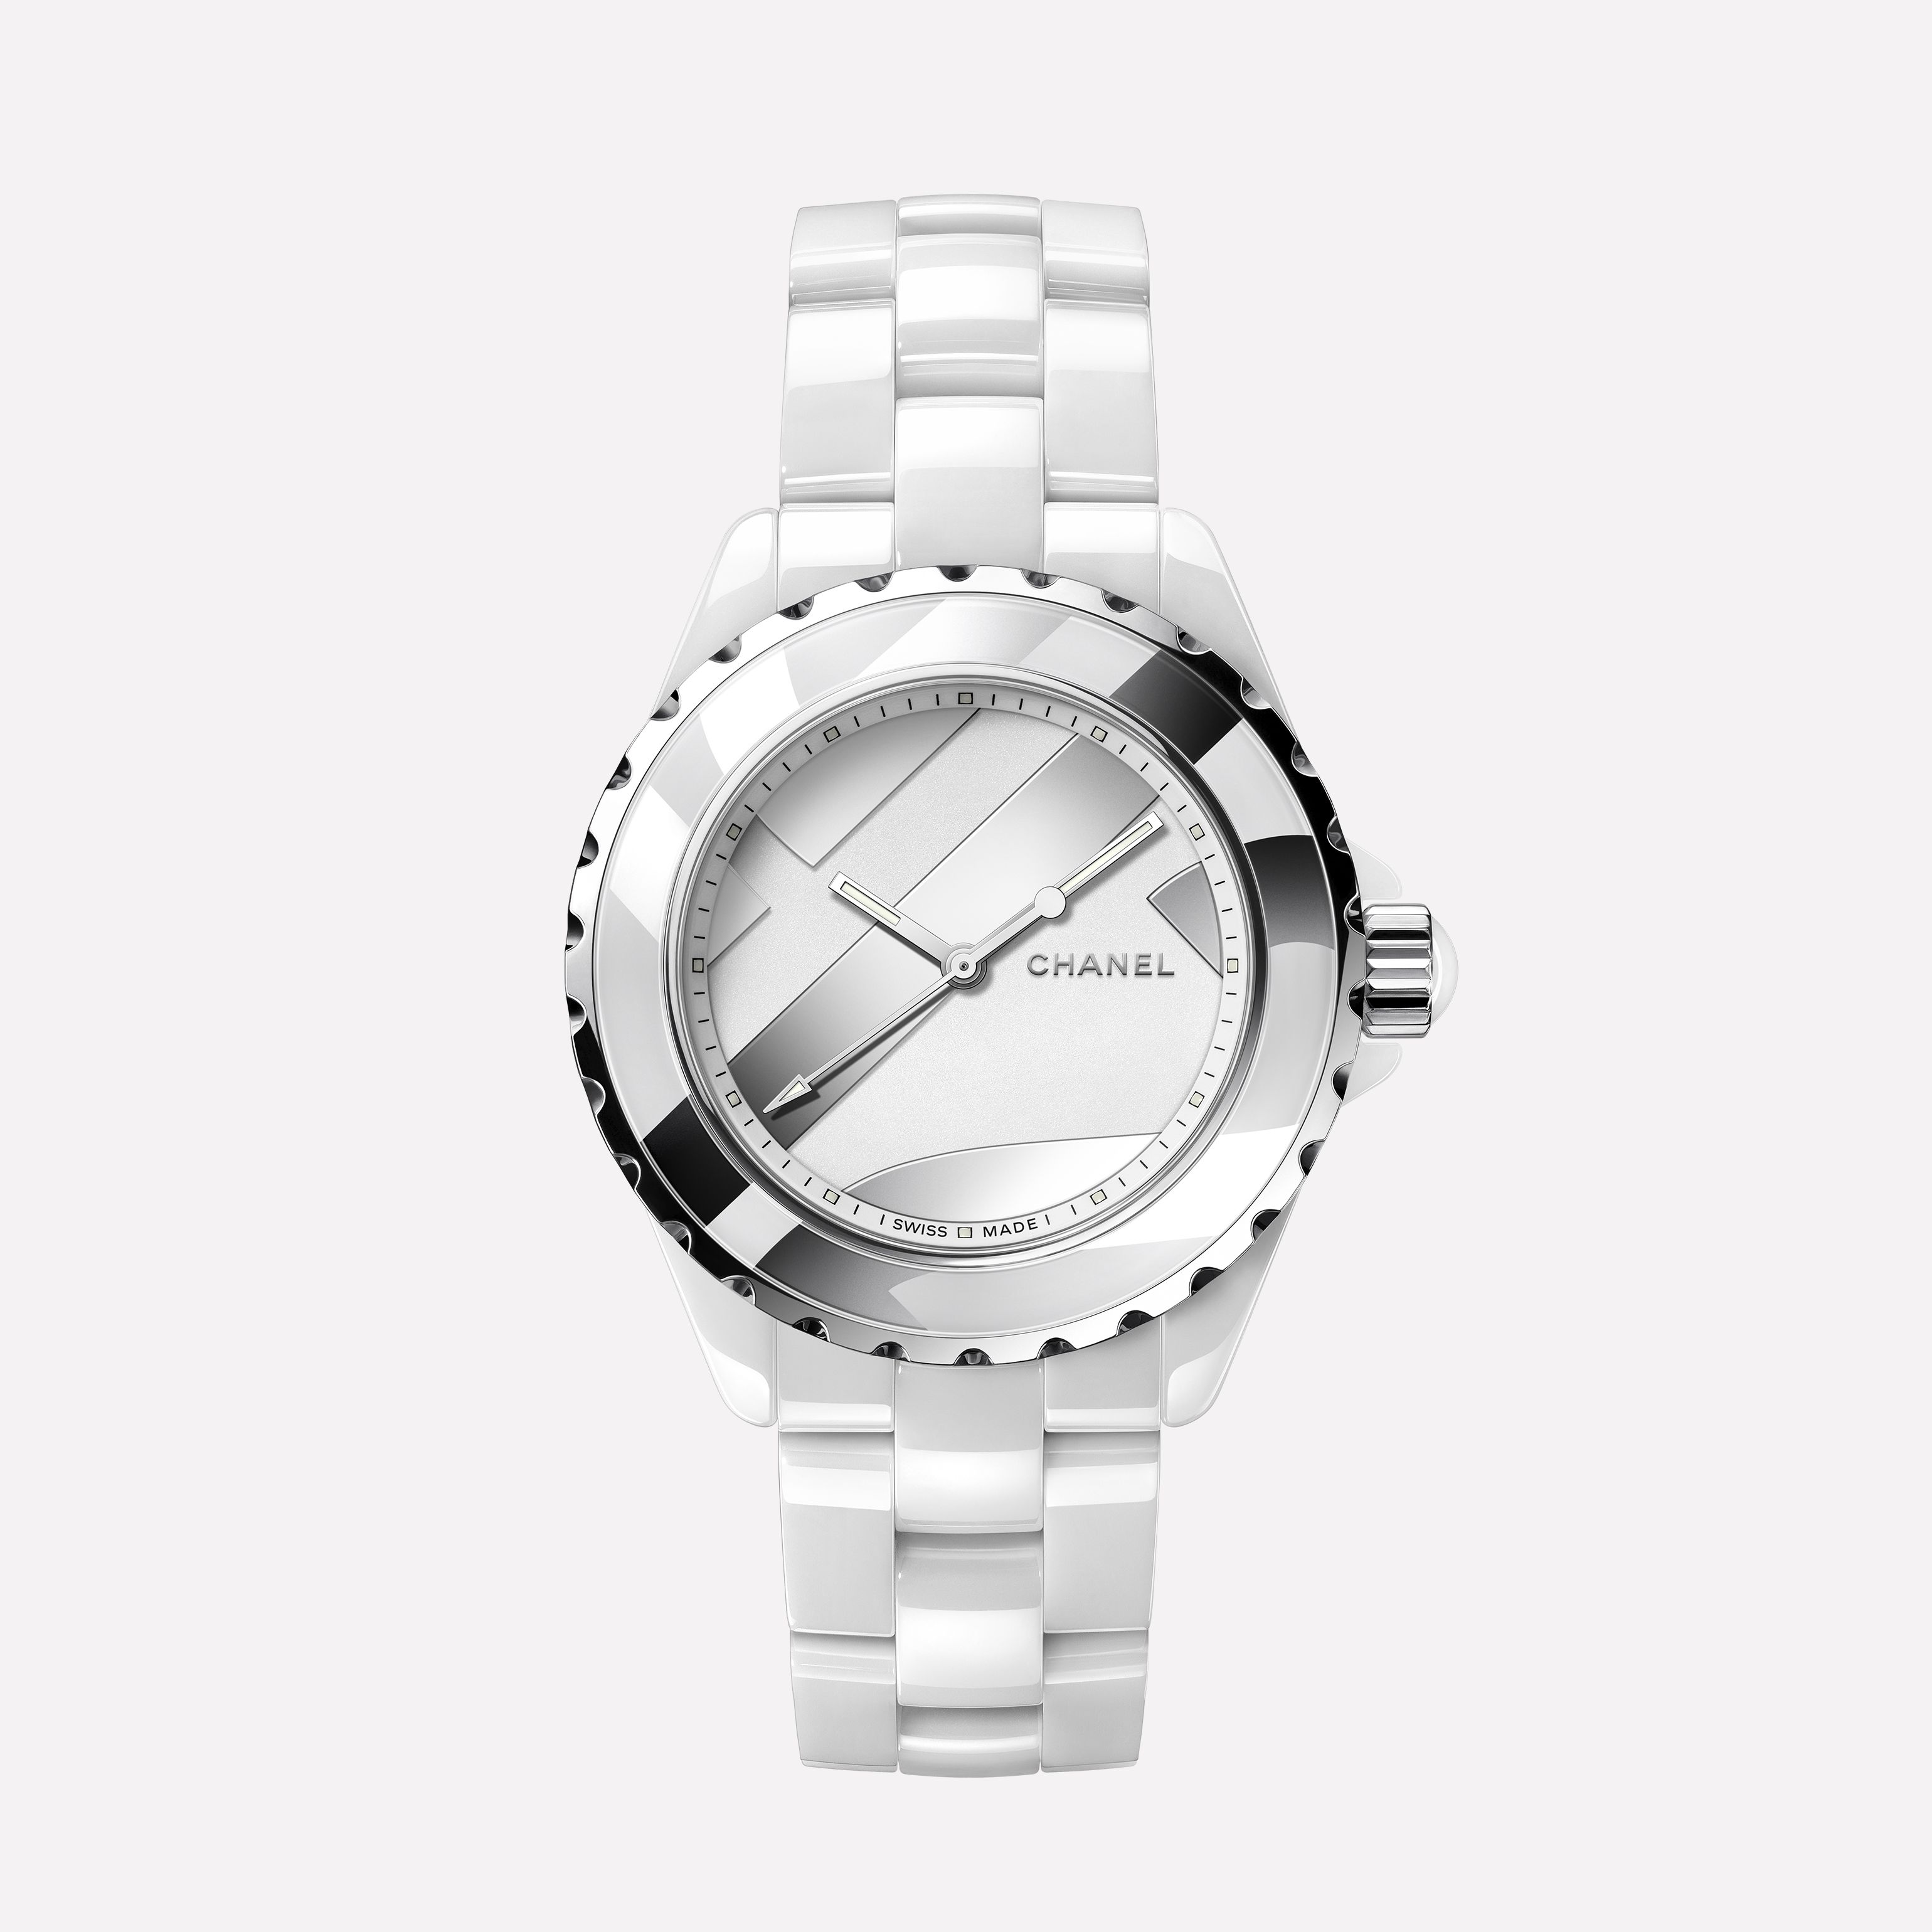 0aee19df0a193 J12 UNTITLED Watch White highly-resistant ceramic and steel